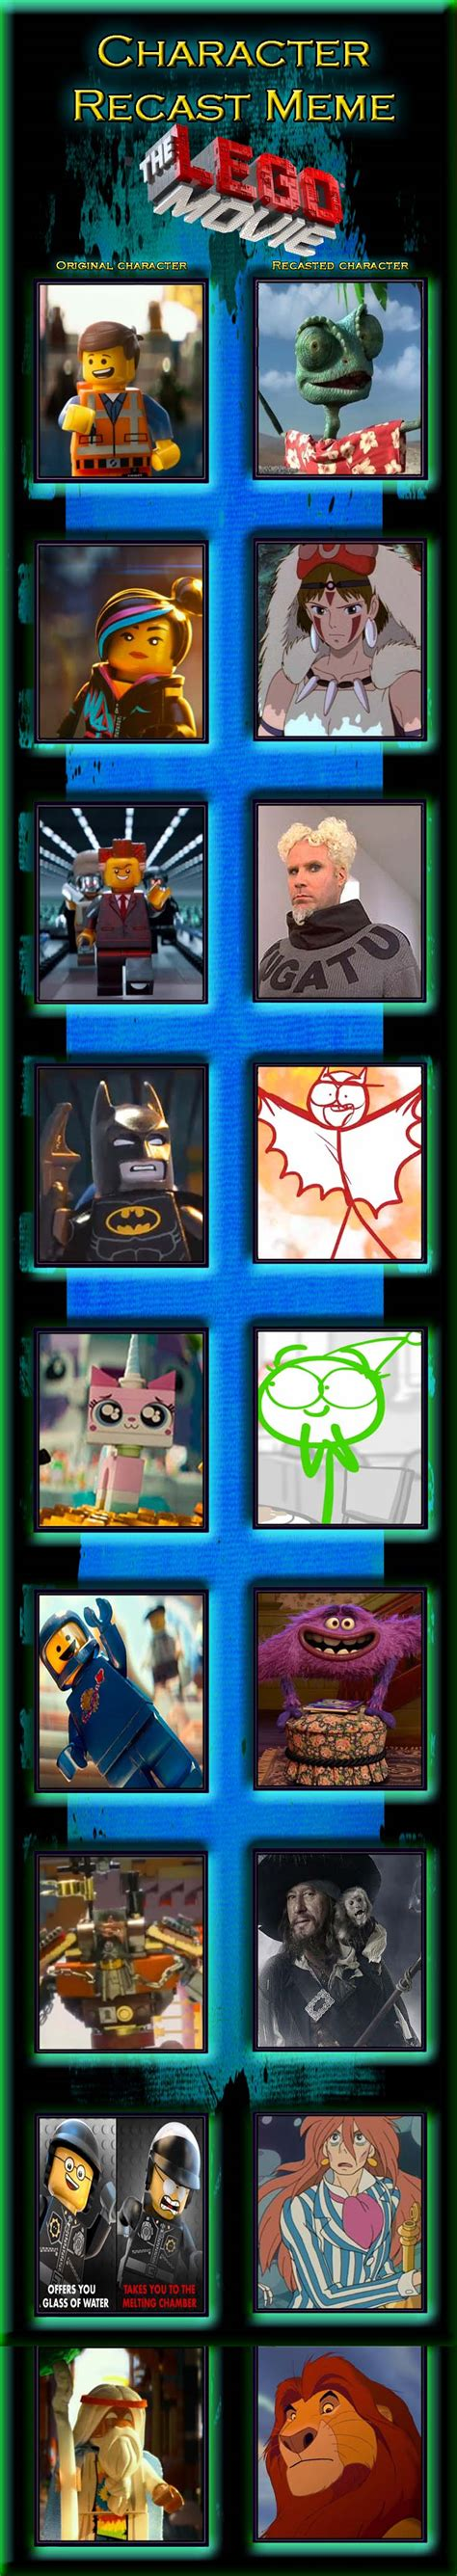 The Lego Movie Meme - recast meme the lego movie by thearist2013 on deviantart